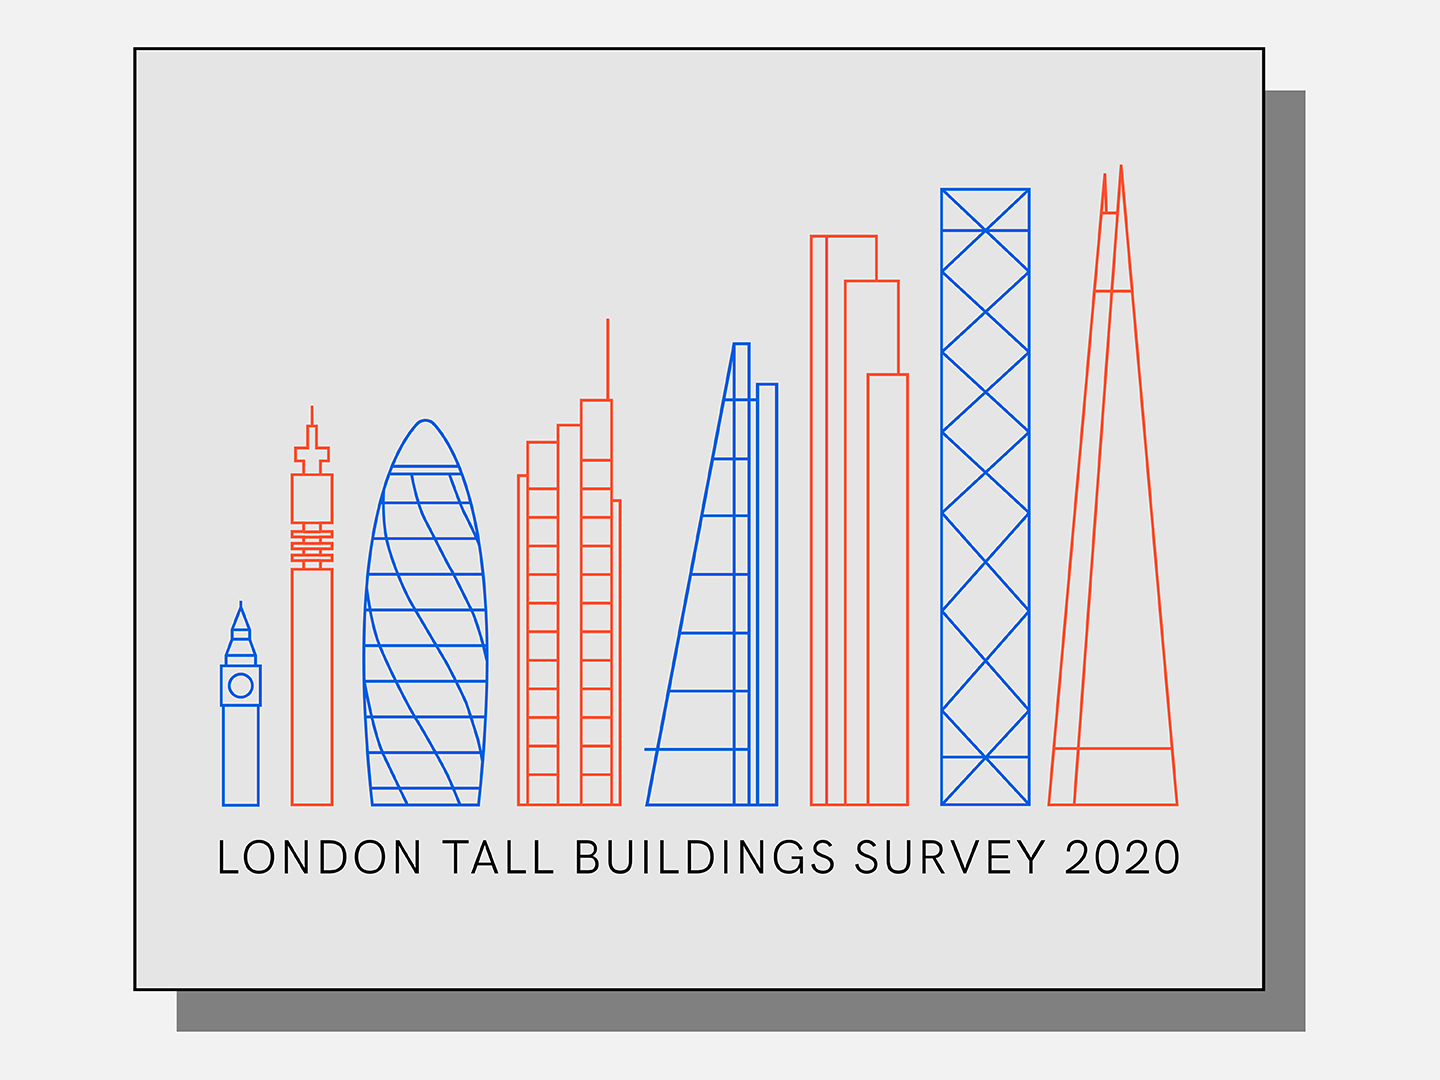 Record number of tall buildings added to London's skyline in last year